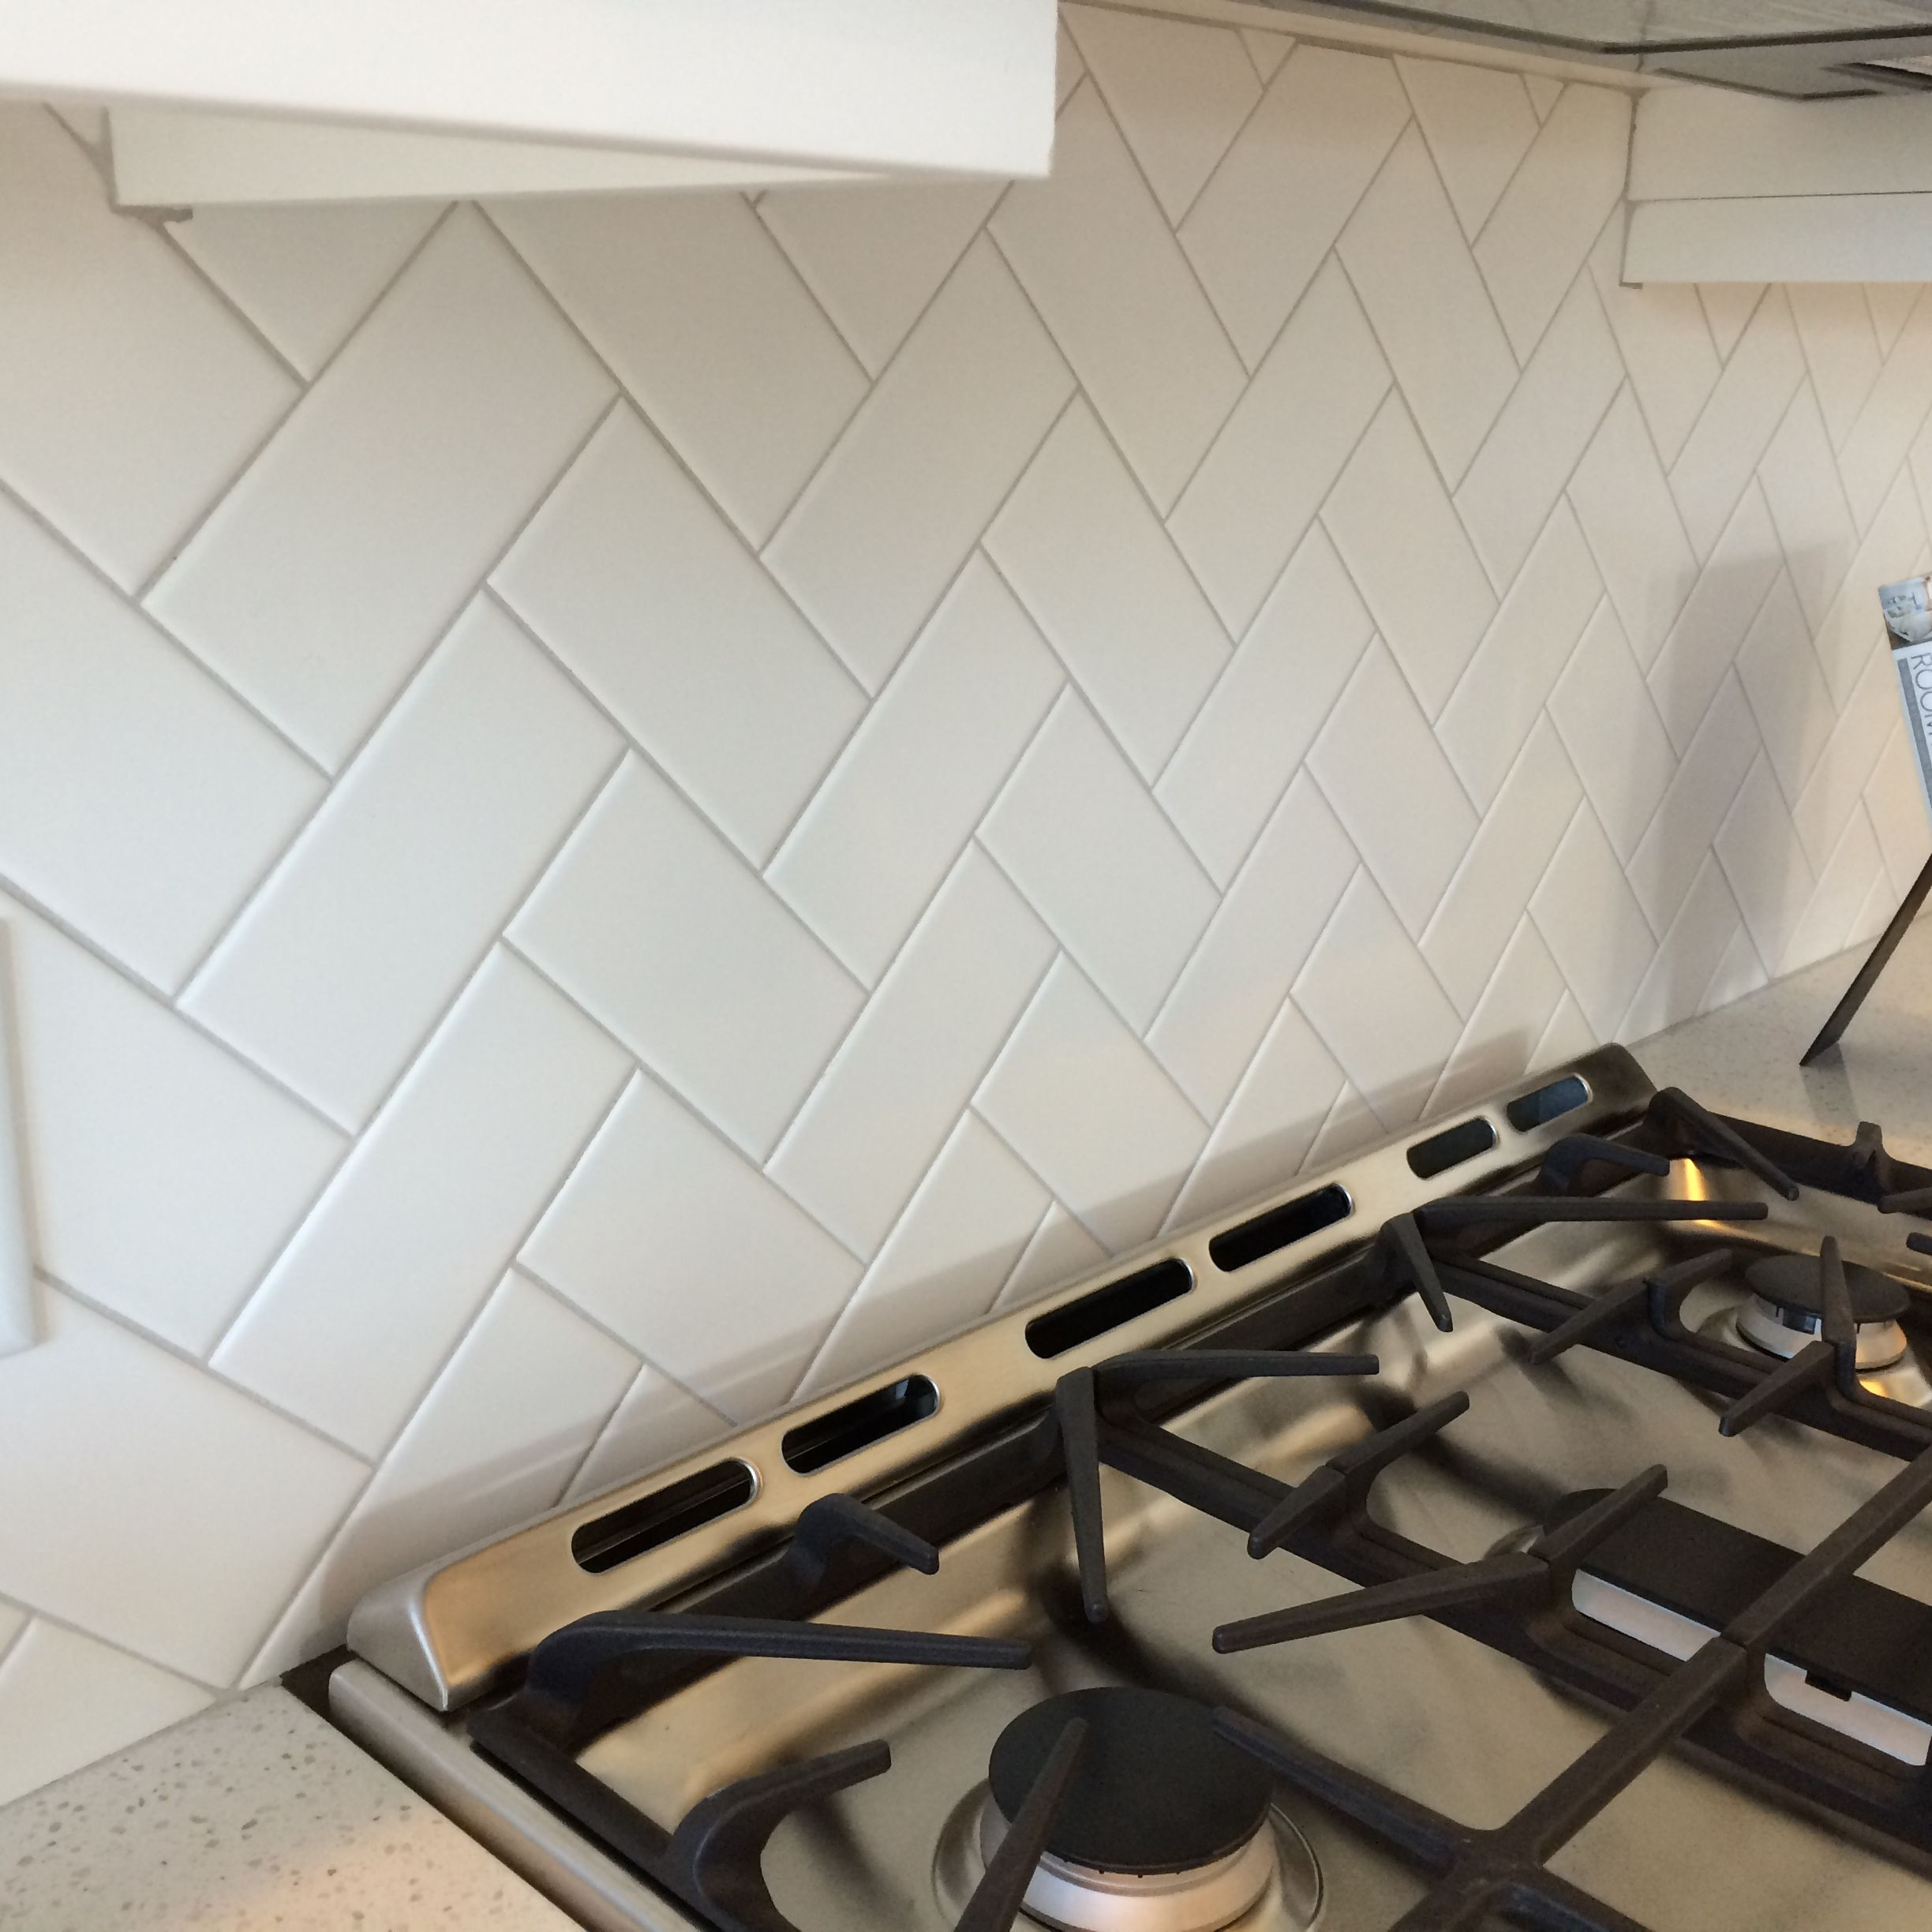 3x6 White Subway Tile In A Herringbone Pattern With Light Gray